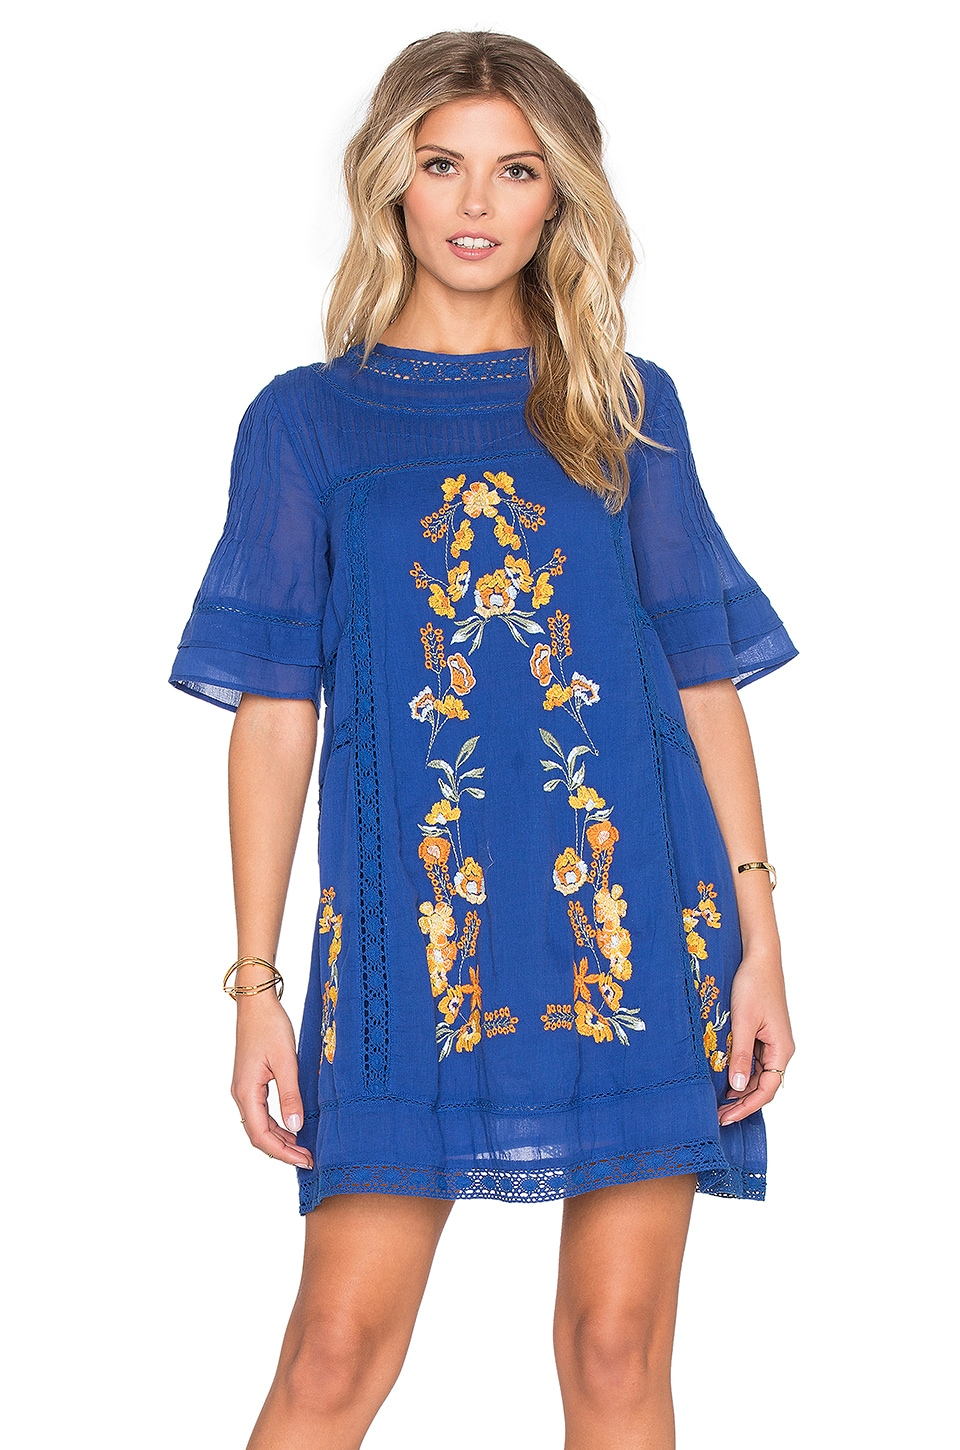 Free People Perfectly Victorian Dress in Bluebird | REVOLVE